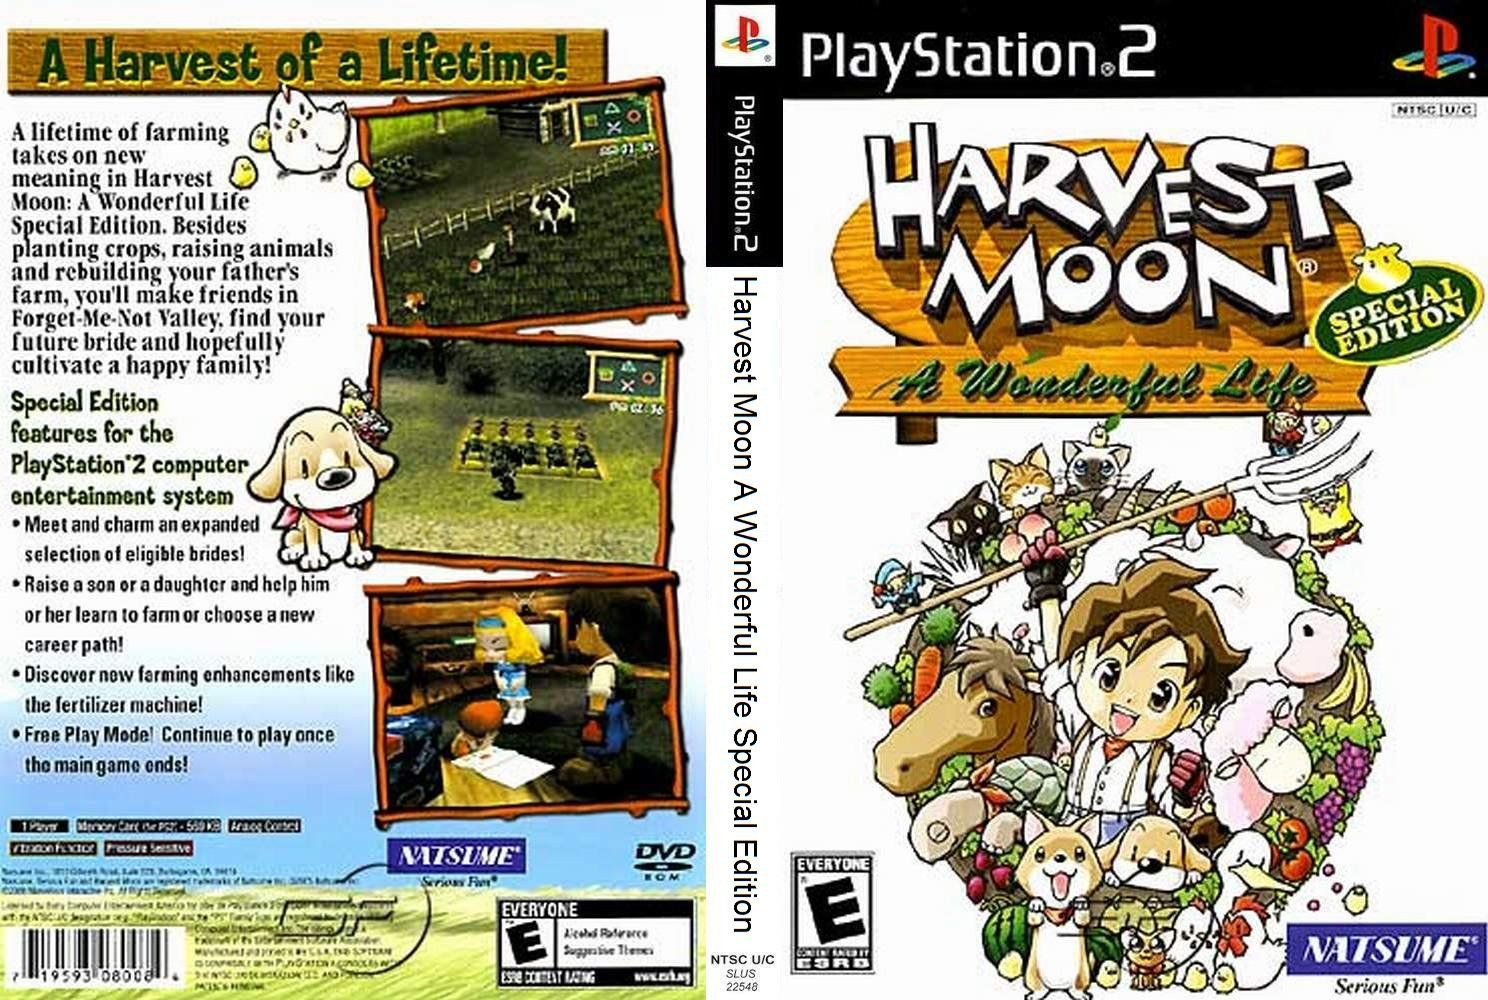 Harvest Moon A wonderful life special edition | All things